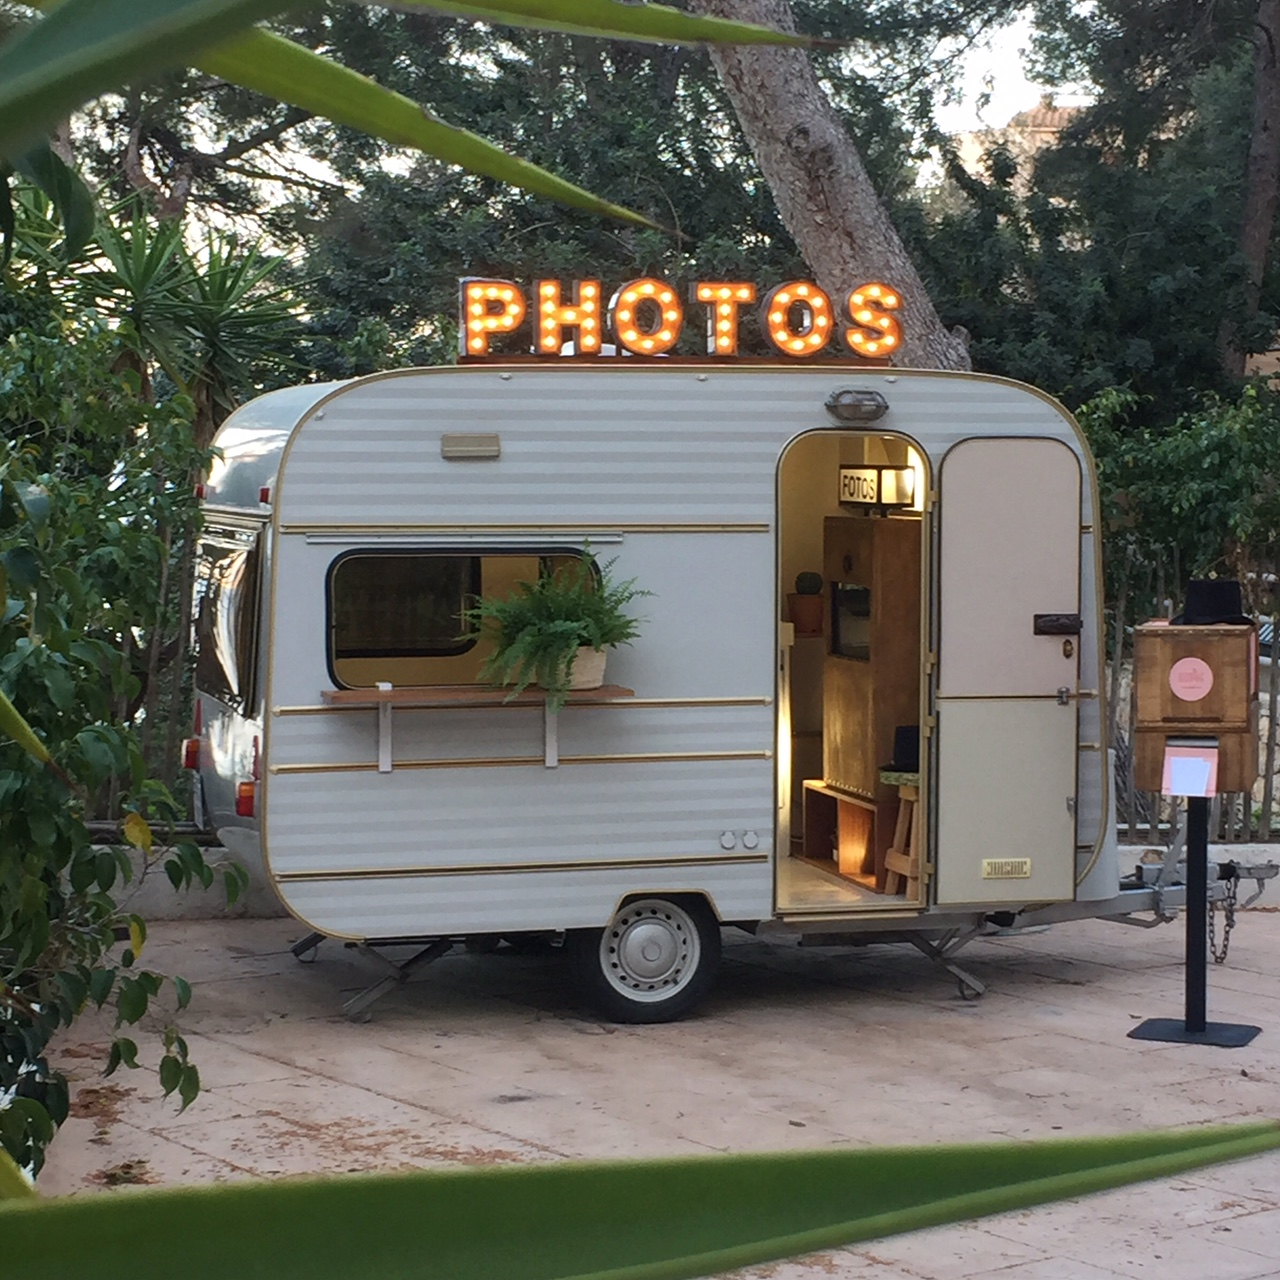 photobooth-mallorca.JPG